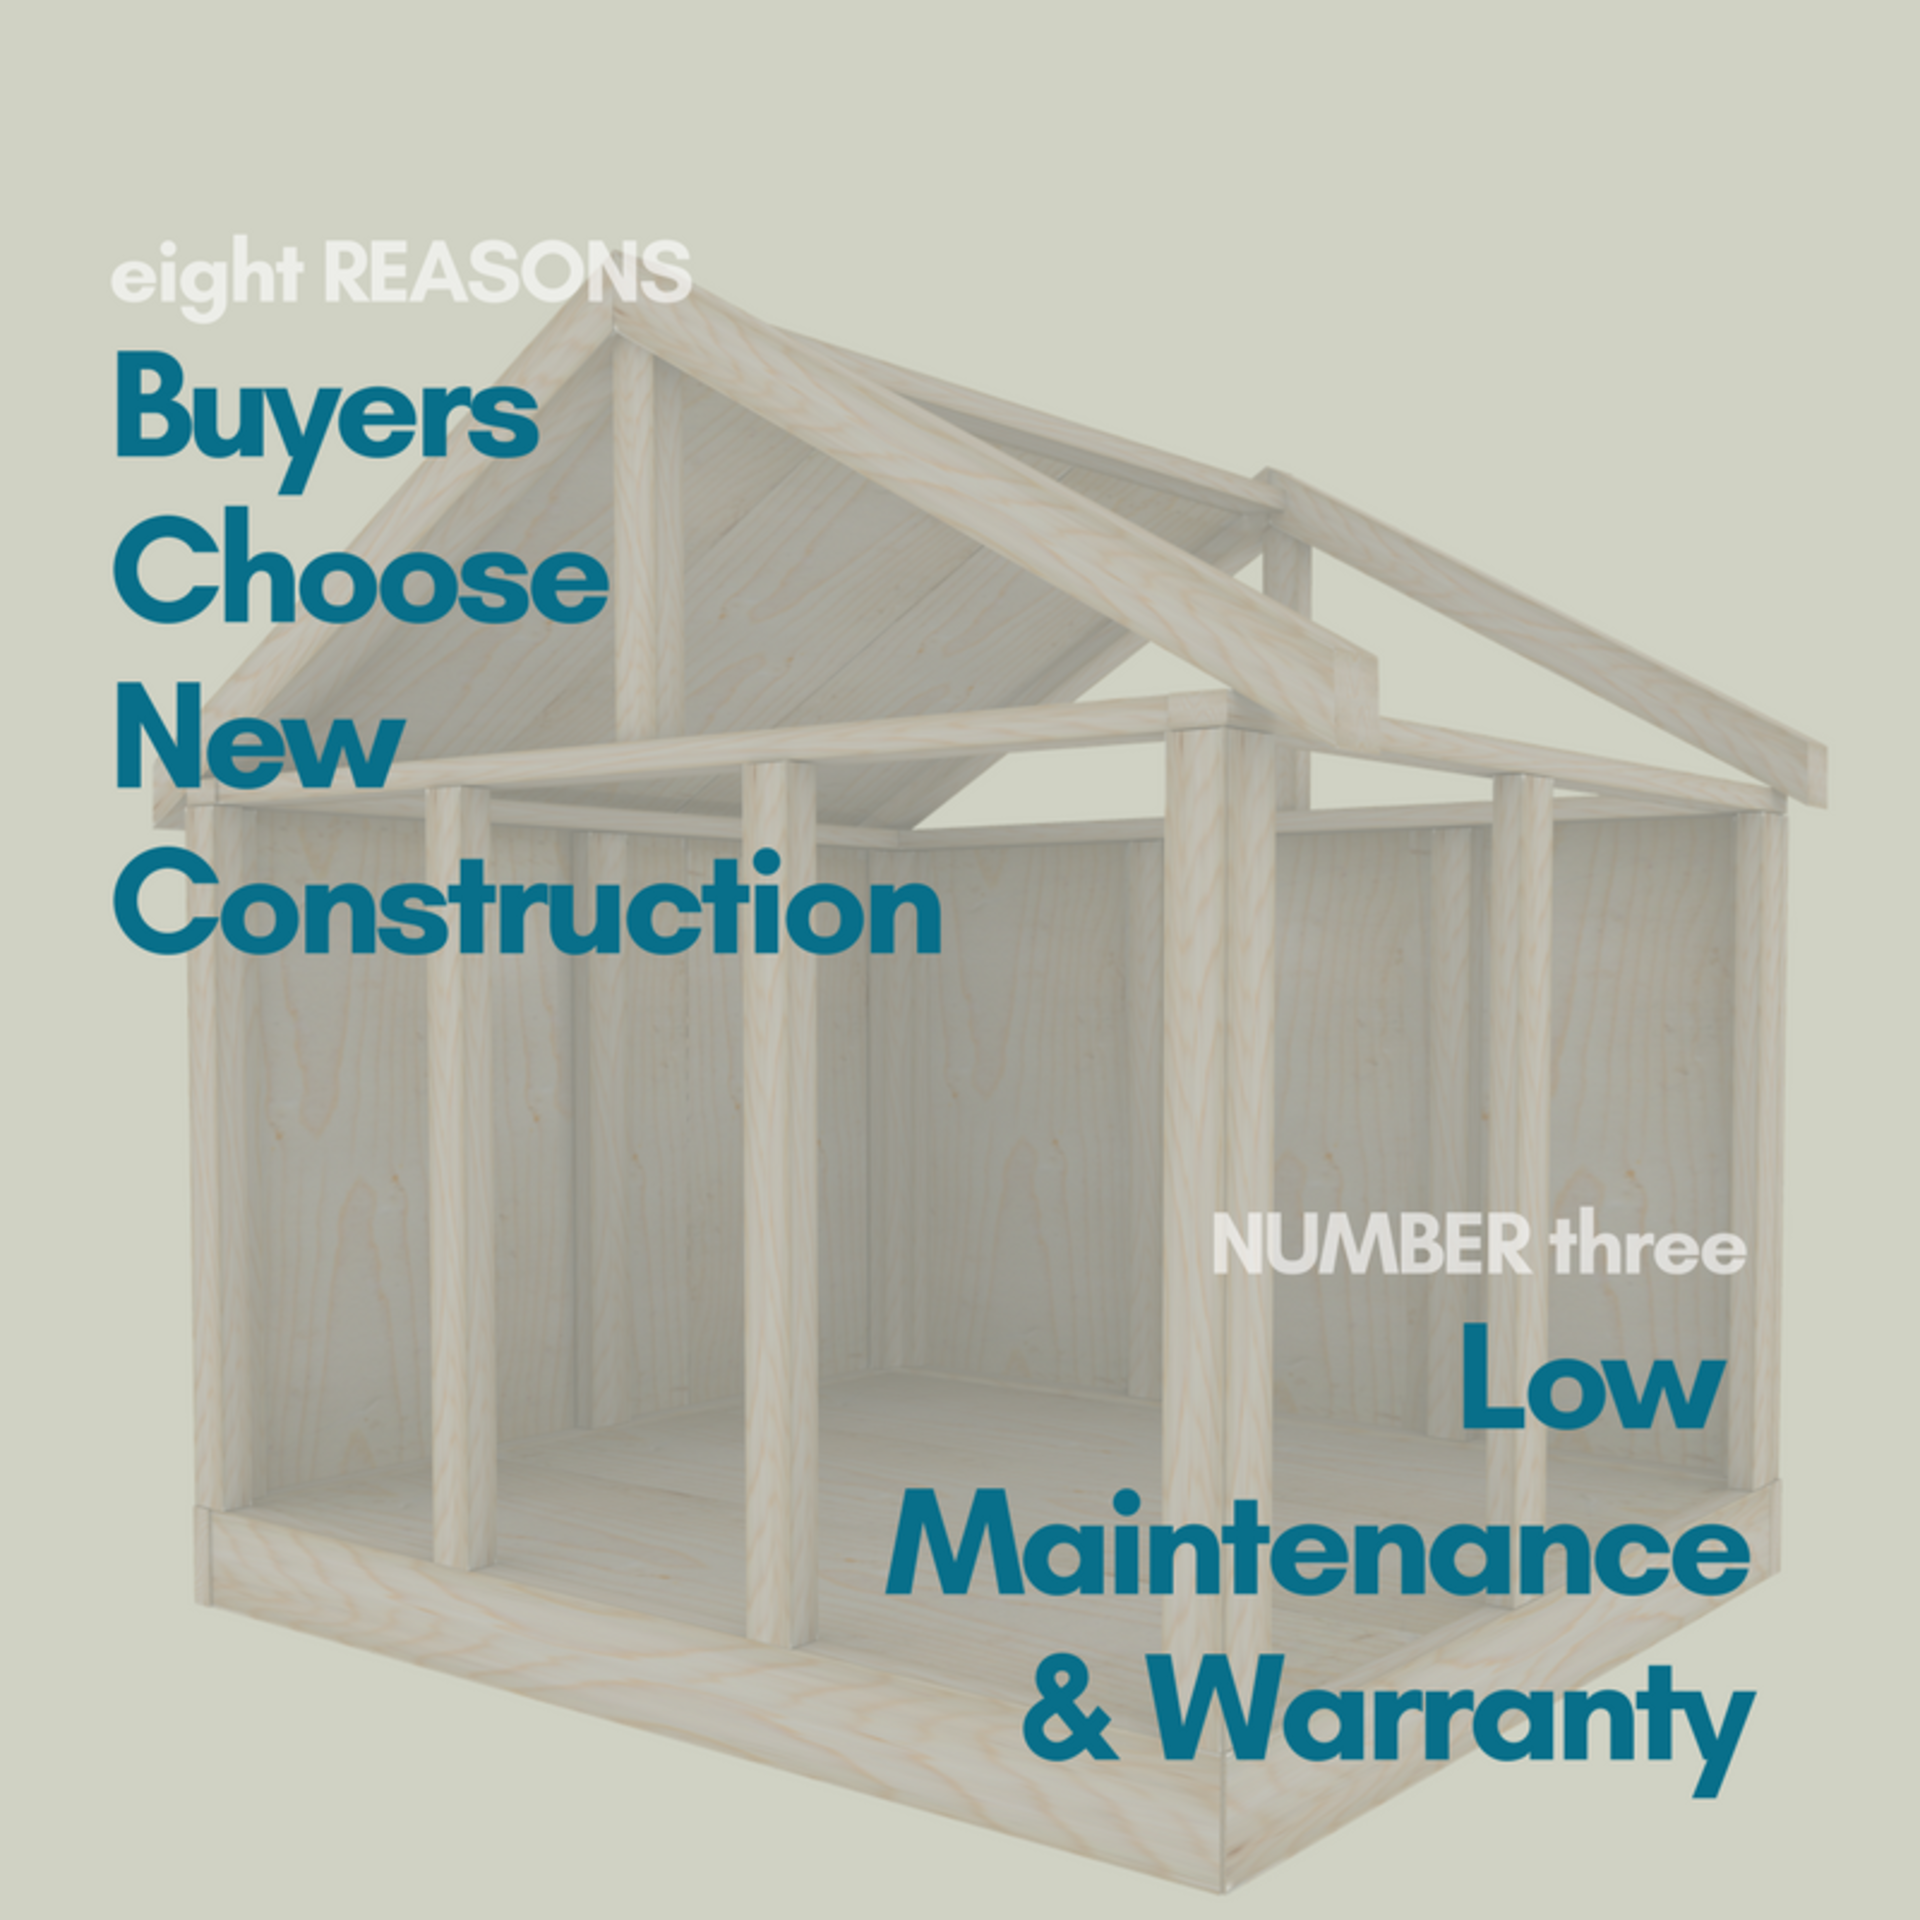 8 REASON BUYERS CHOOSE NEW CONSTRUCTION – Low Maintence and Warranty